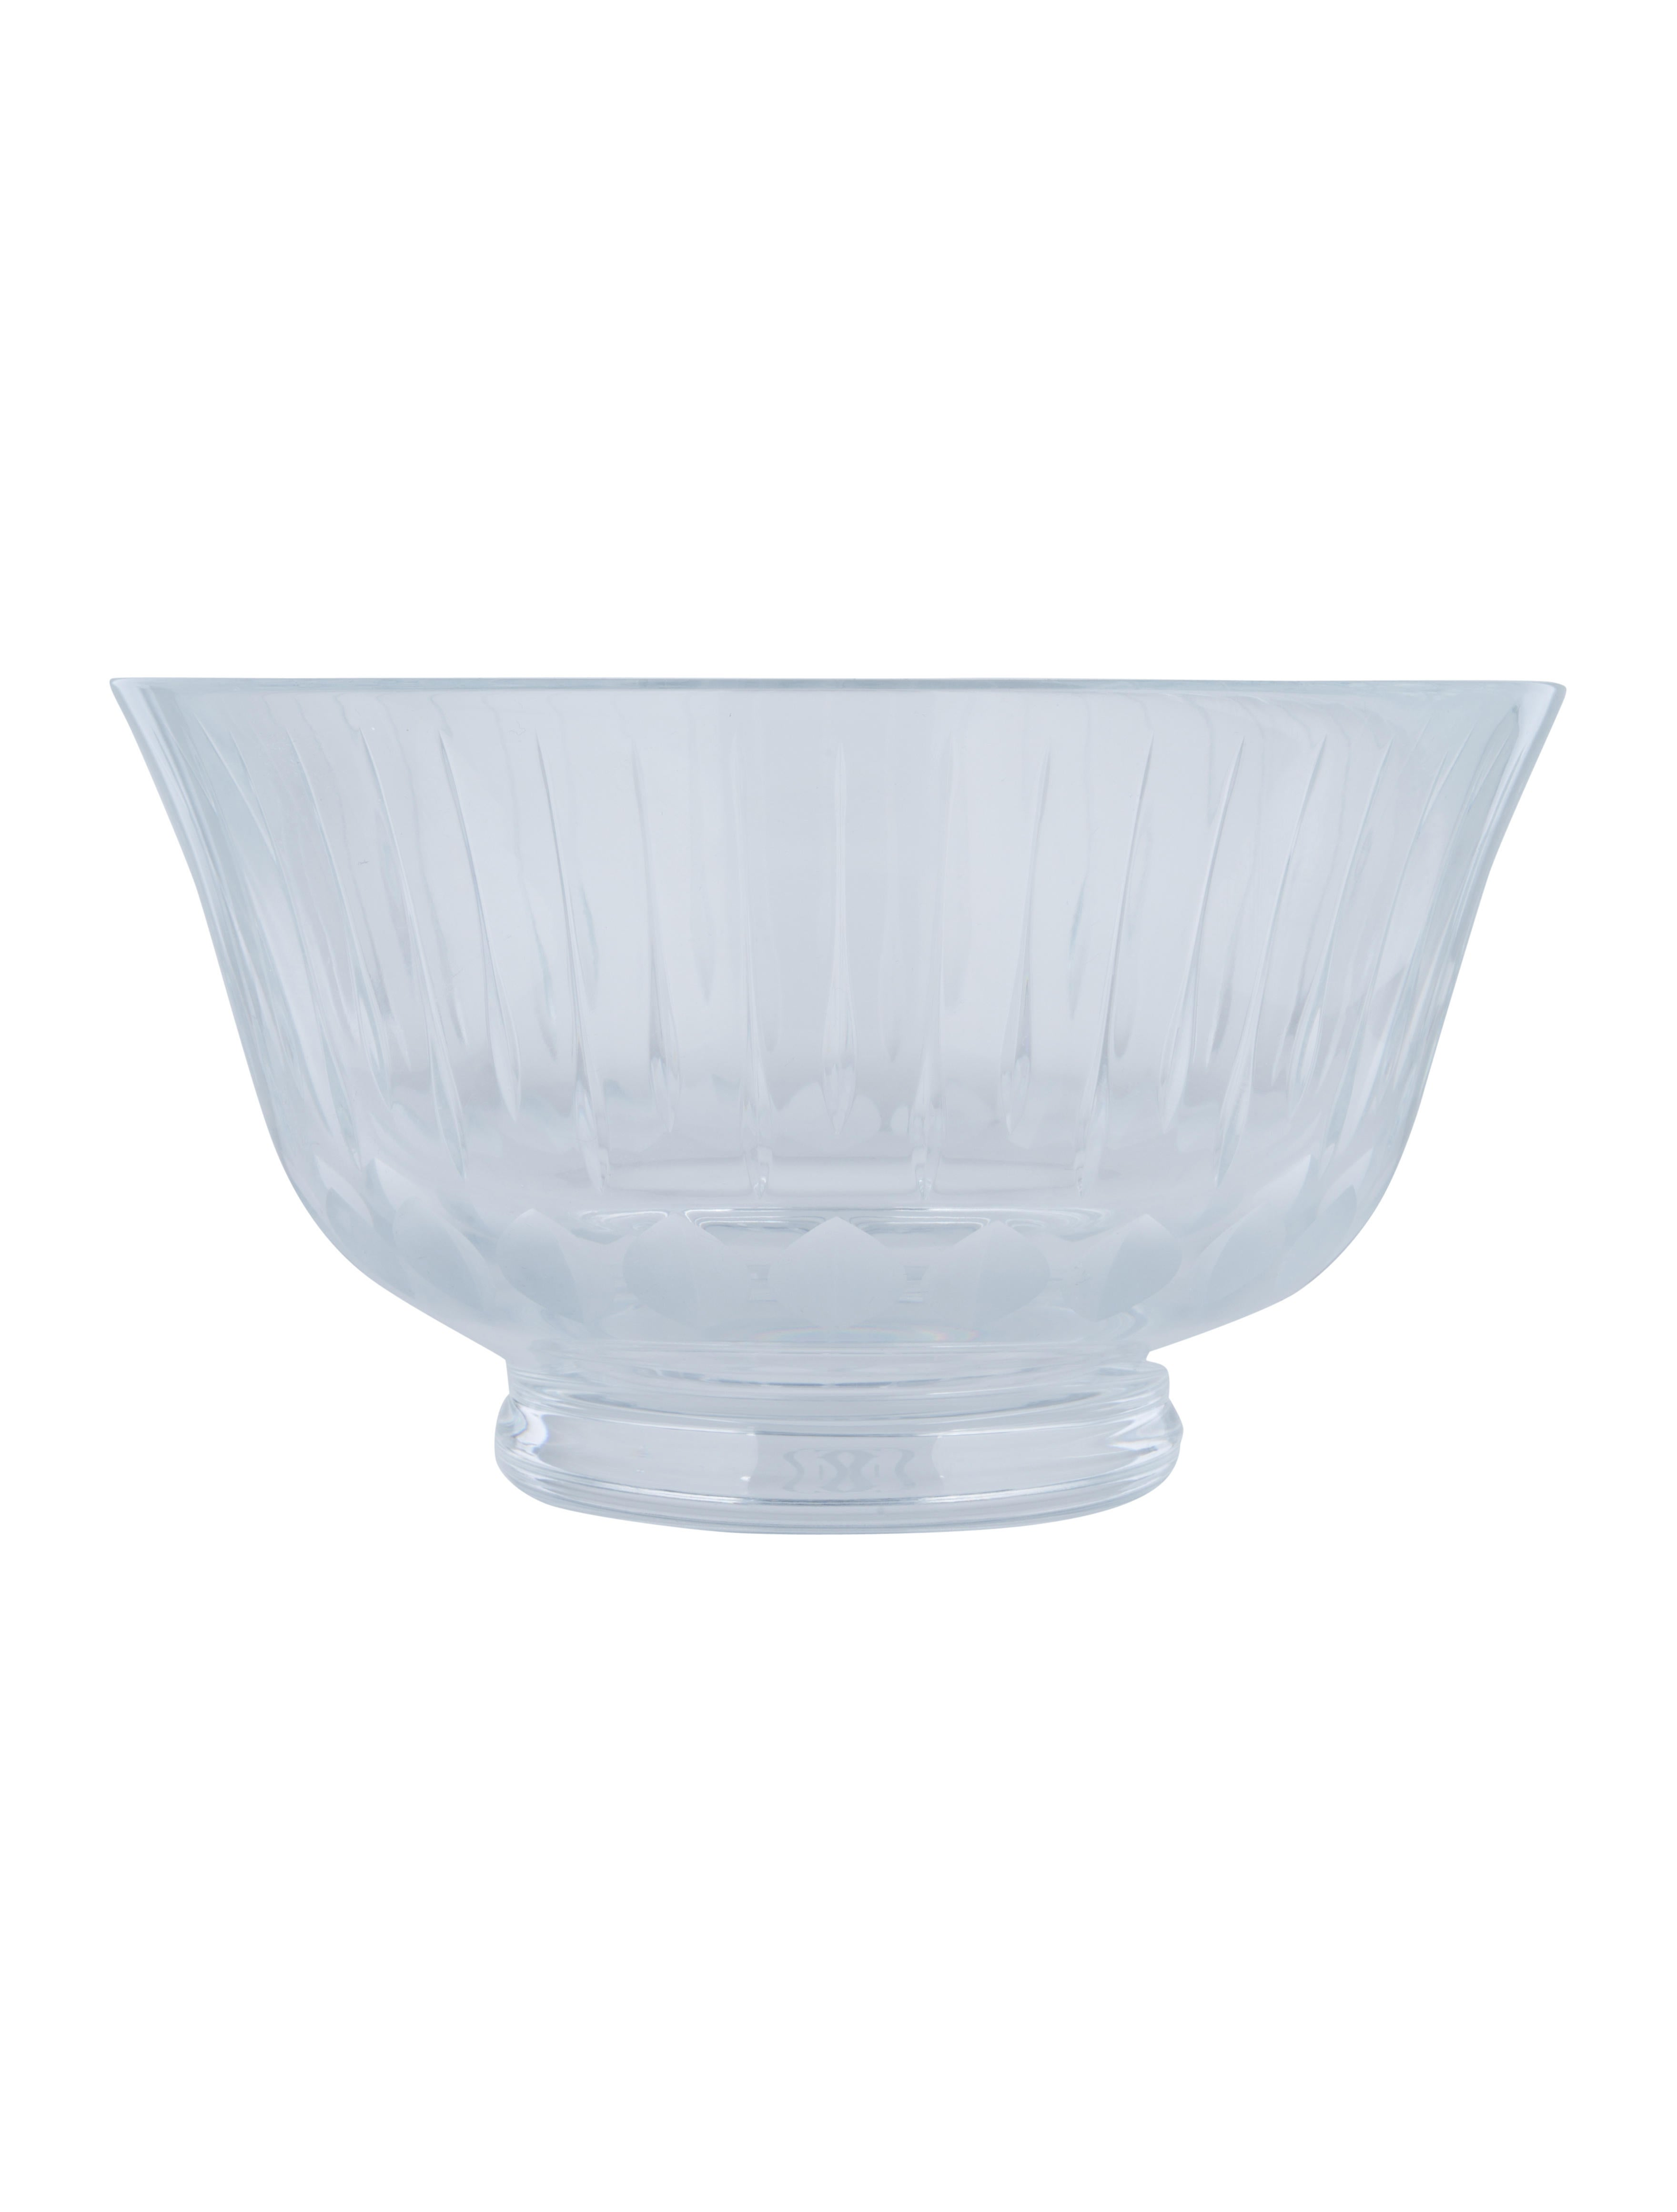 Cartier La Maison du Shogun Serving Bowl - Tabletop And Kitchen ...